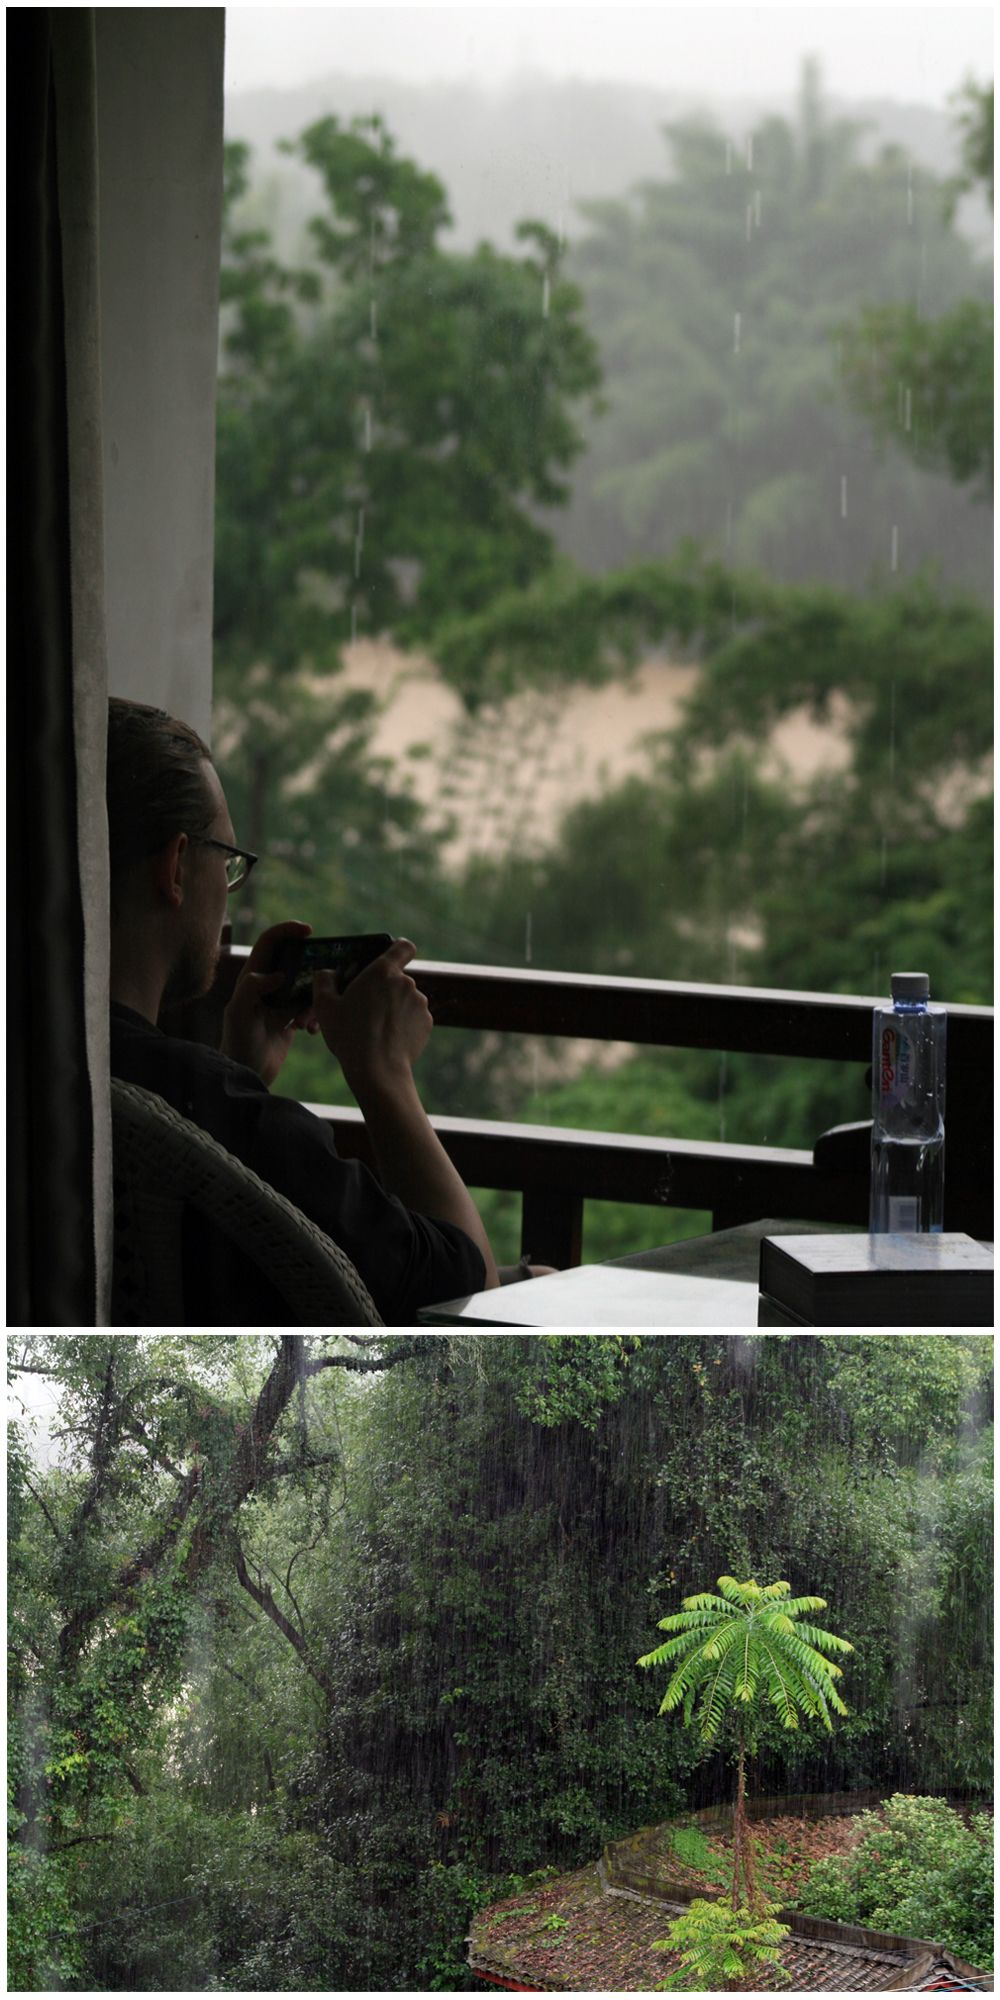 Day 162:  We decided to stay again at the Snow Lion Resort in Yangshuo.  There was a torrential downpour all morning, which gave us a nice excuse to chill on the balcony to do some reading and take in the views.